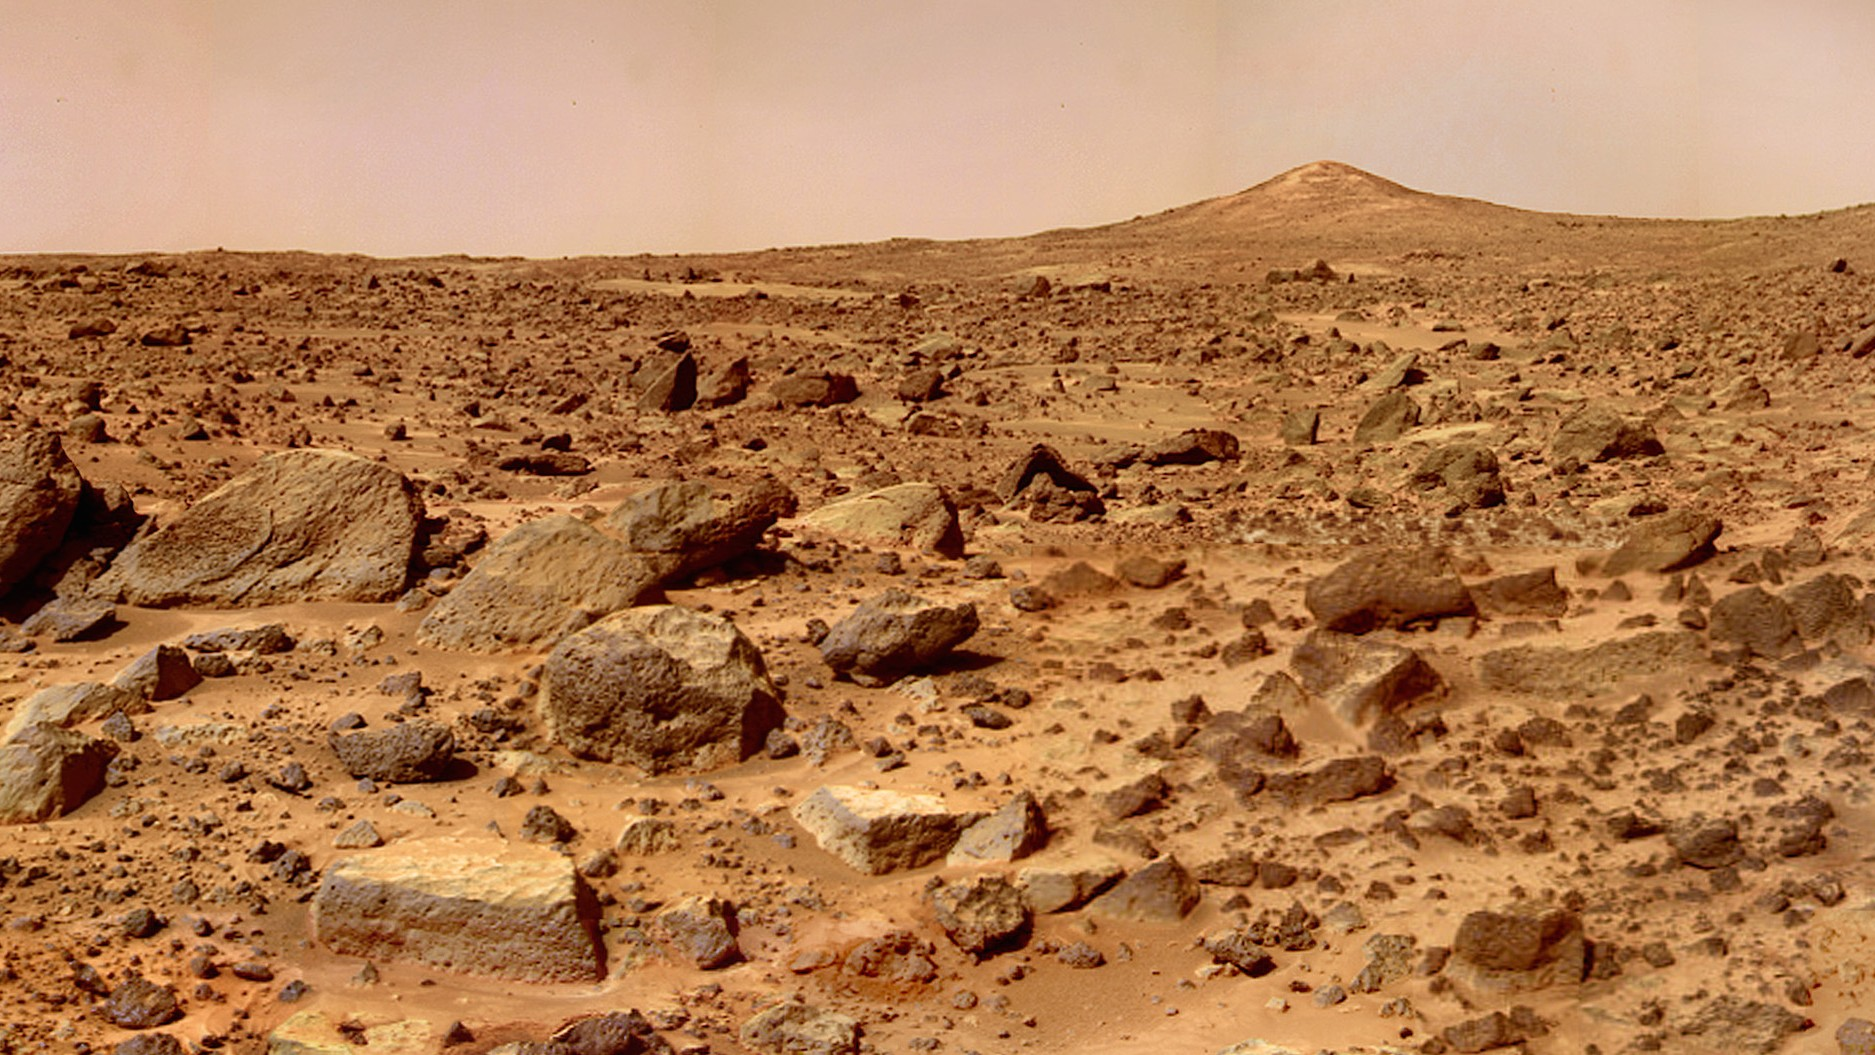 How Liquid Water Could Exist on Mars